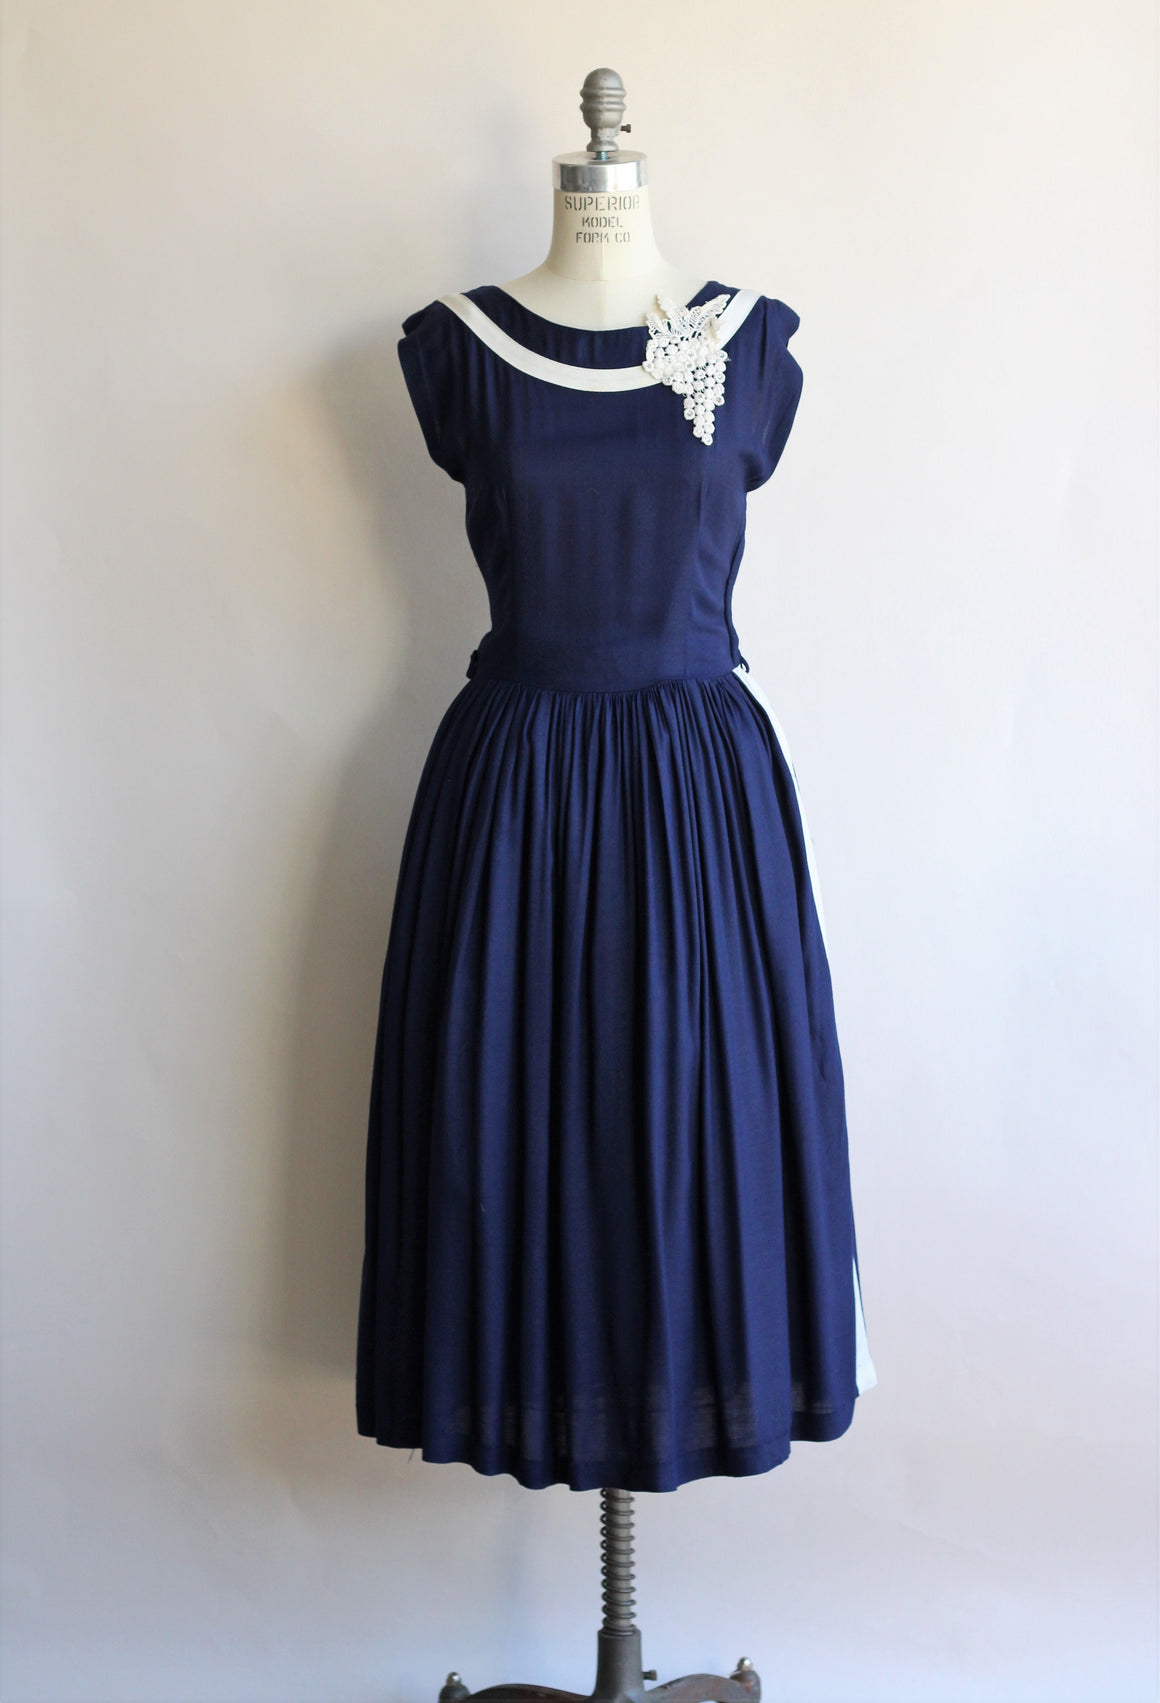 1950s Navy Blue Dress with White Appliques and Stripe